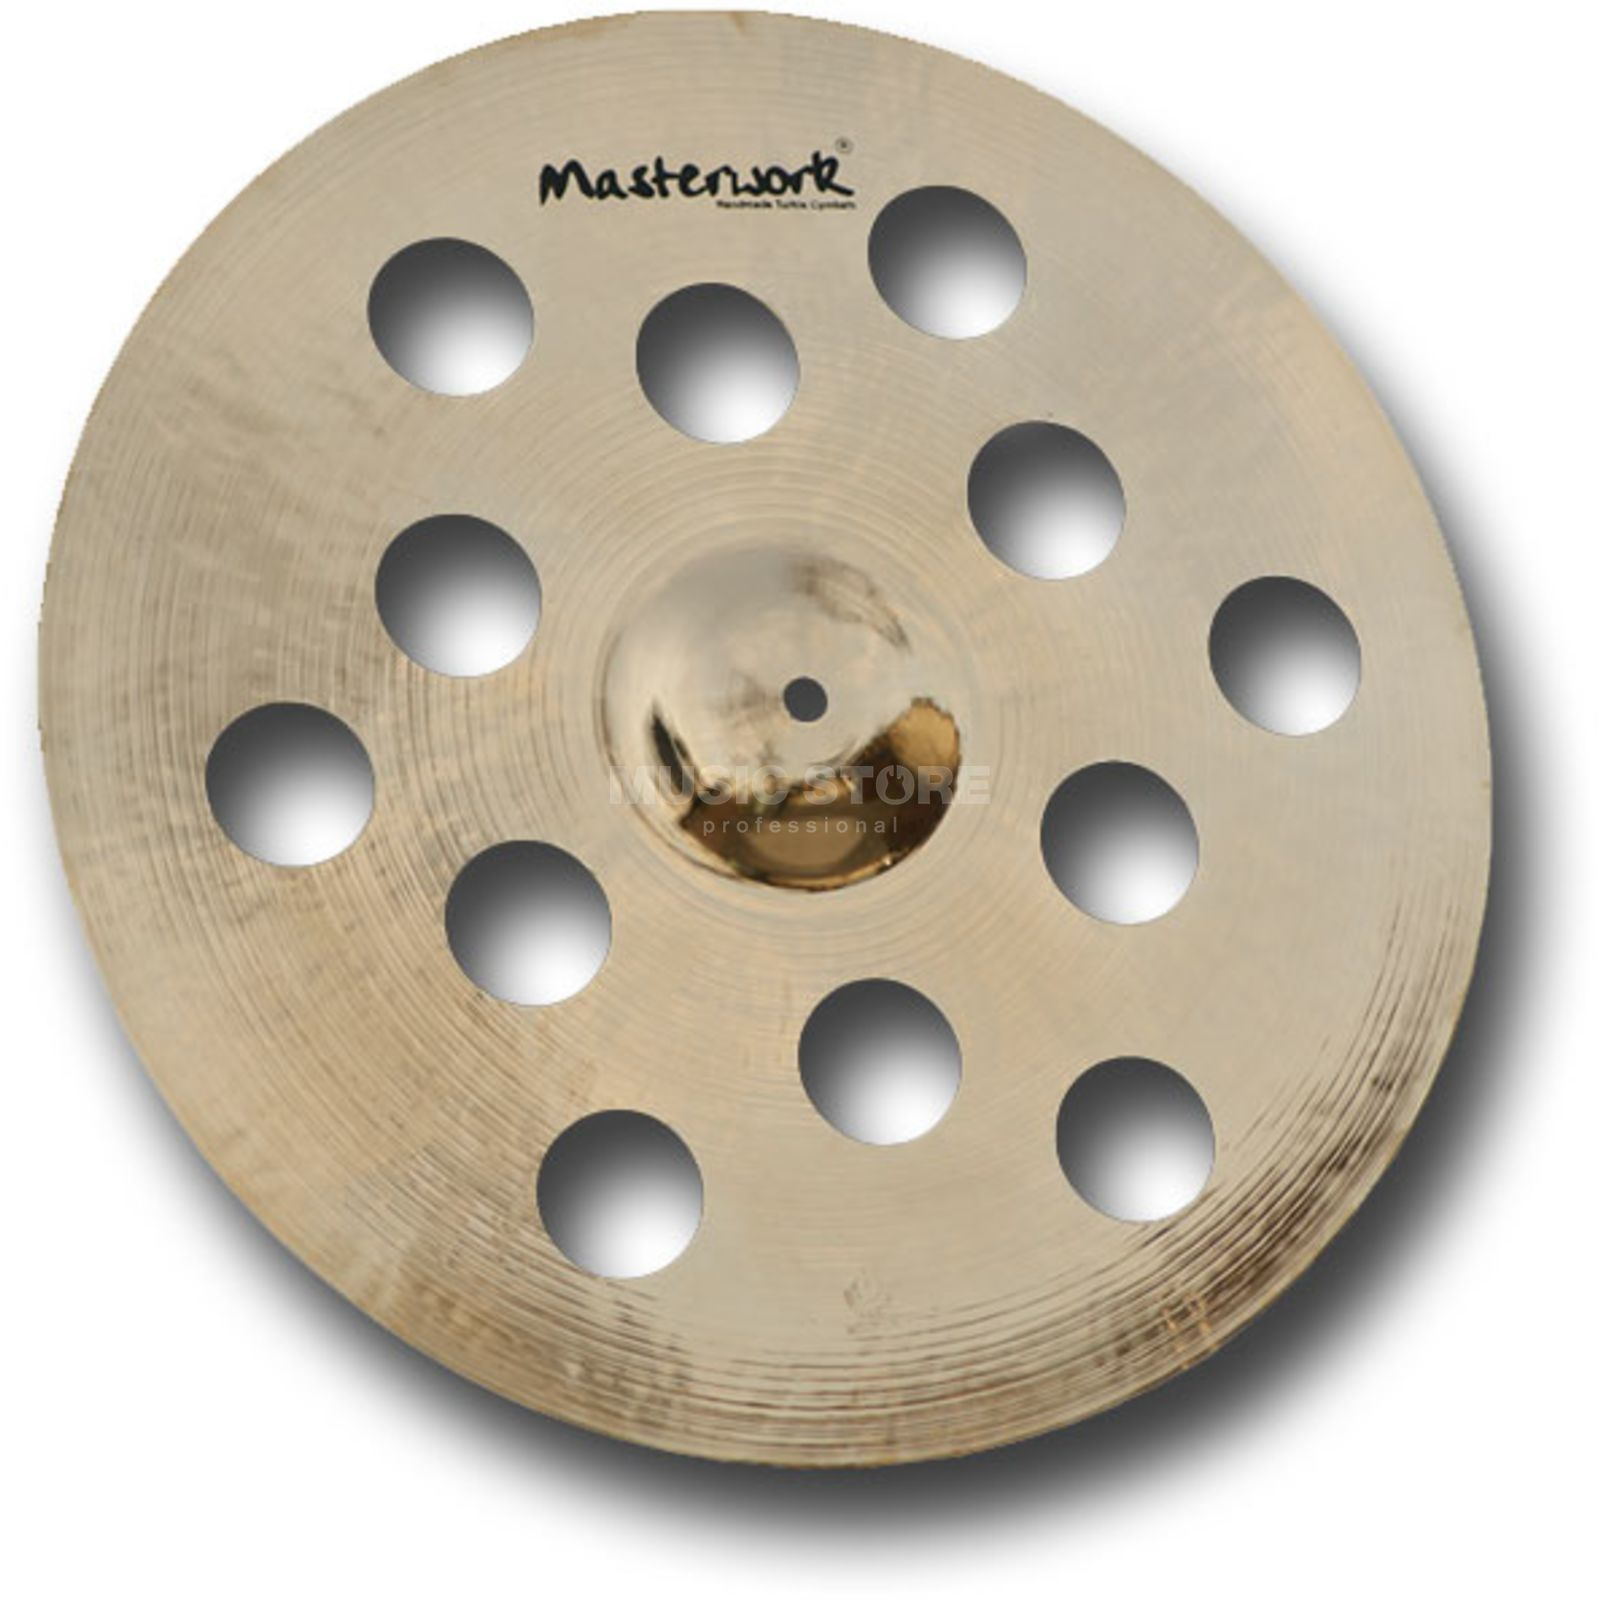 "Masterwork Resonant FX Crash 18"", Brilliant Finish Produktbild"